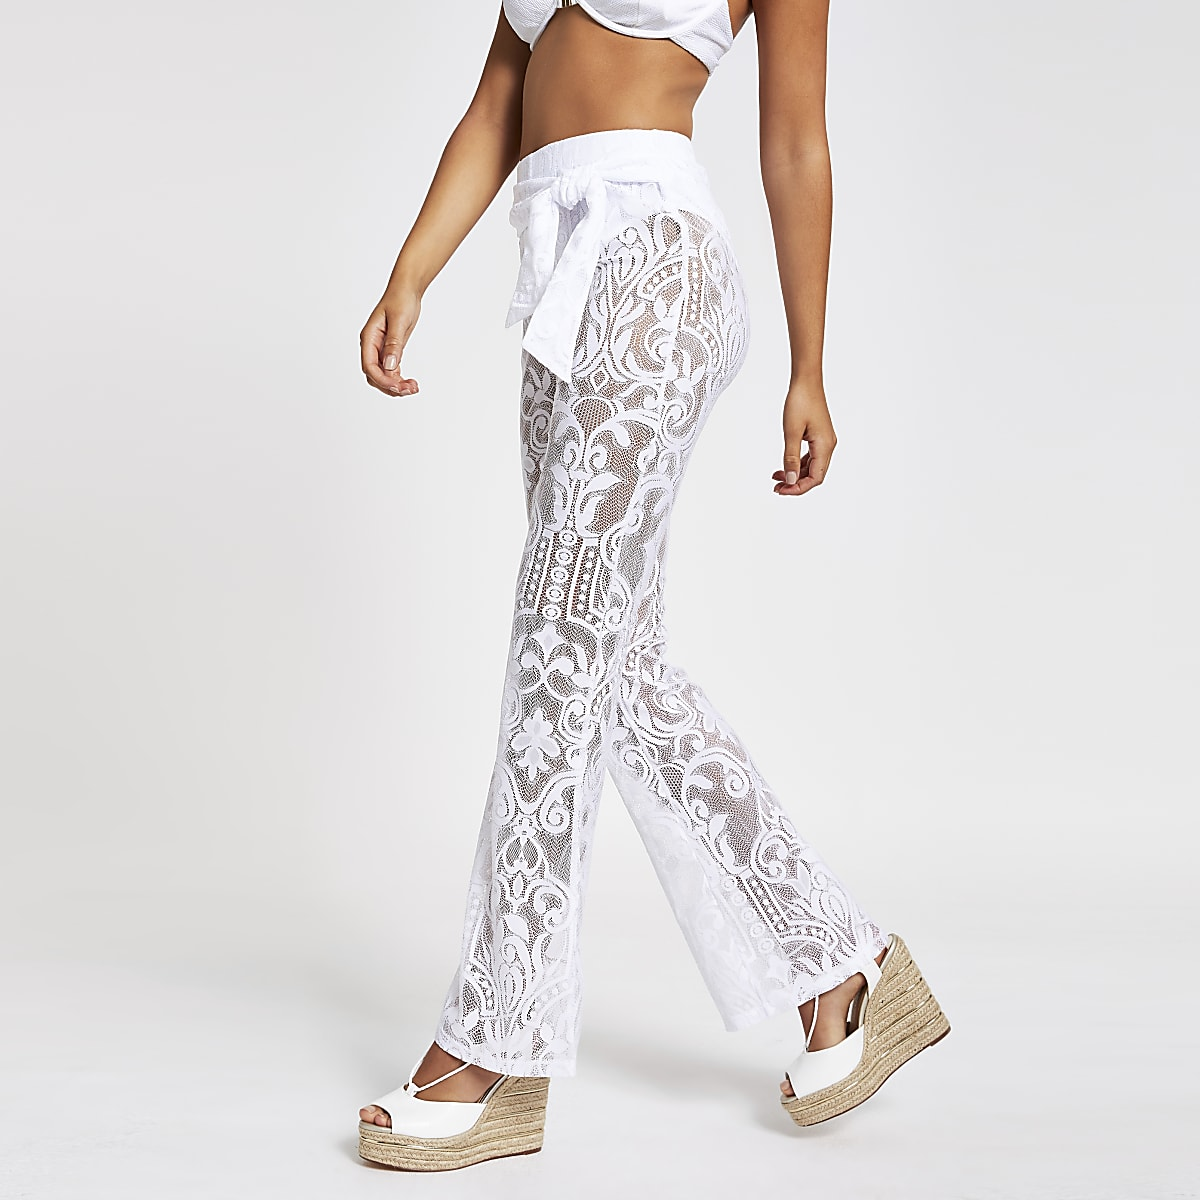 White lace flared tie waist pants